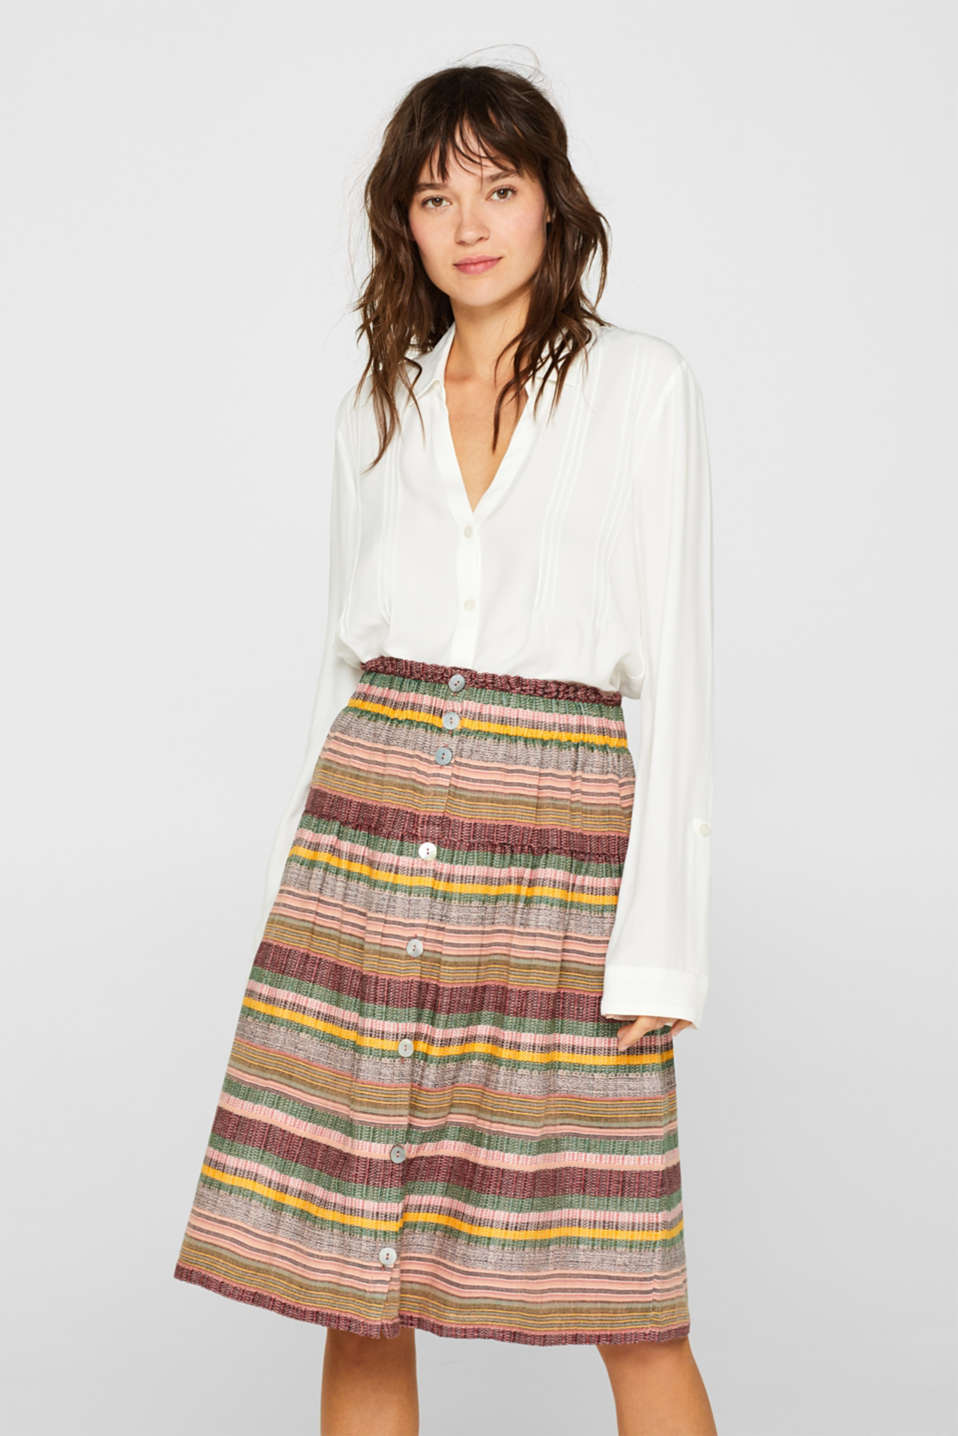 edc - Multi-coloured skirt with button placket, 100% cotton